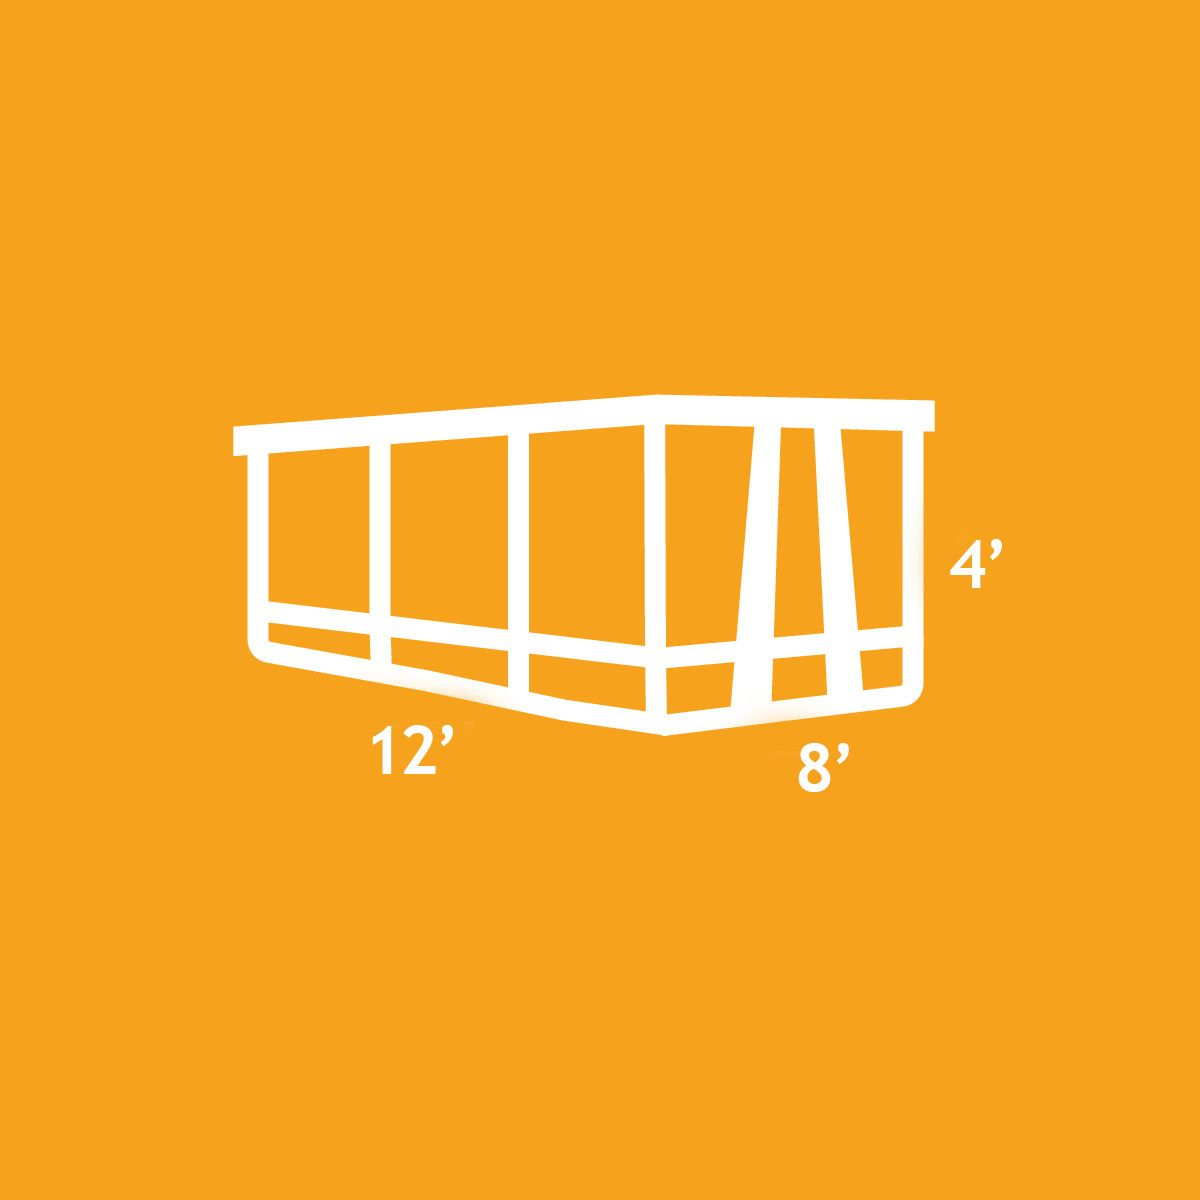 An illustration of the 12 Yard Dumpster